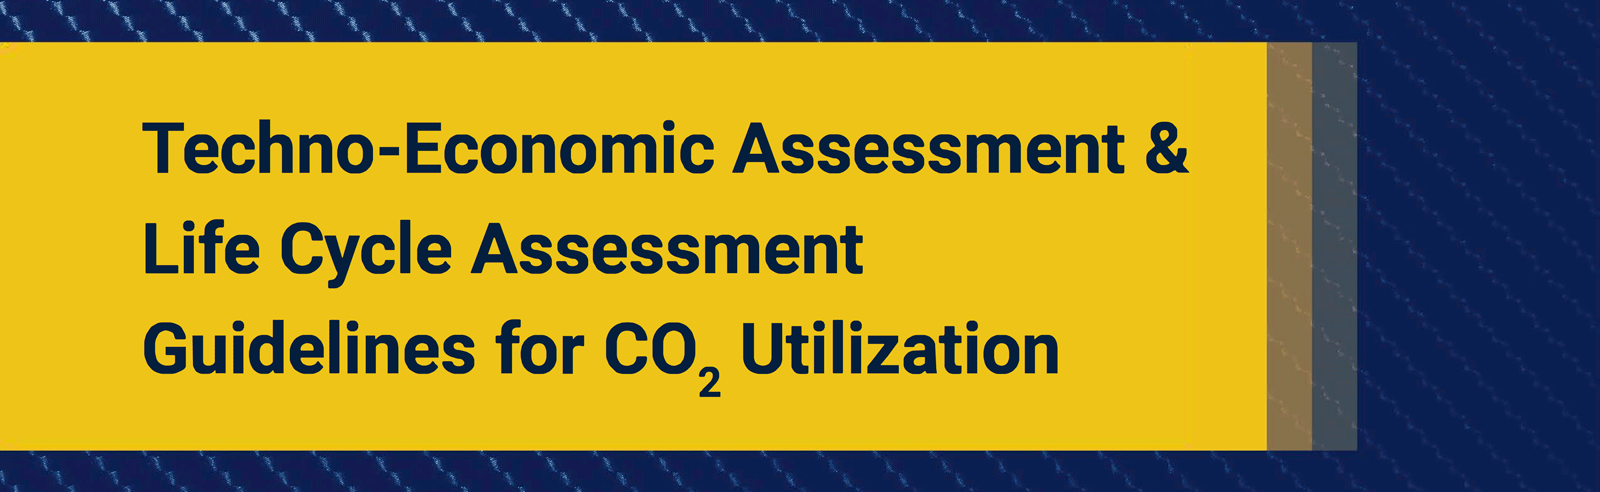 Techno-Economic Assessment & Life Cycle Assessment Guidelines for OC2 Utilization